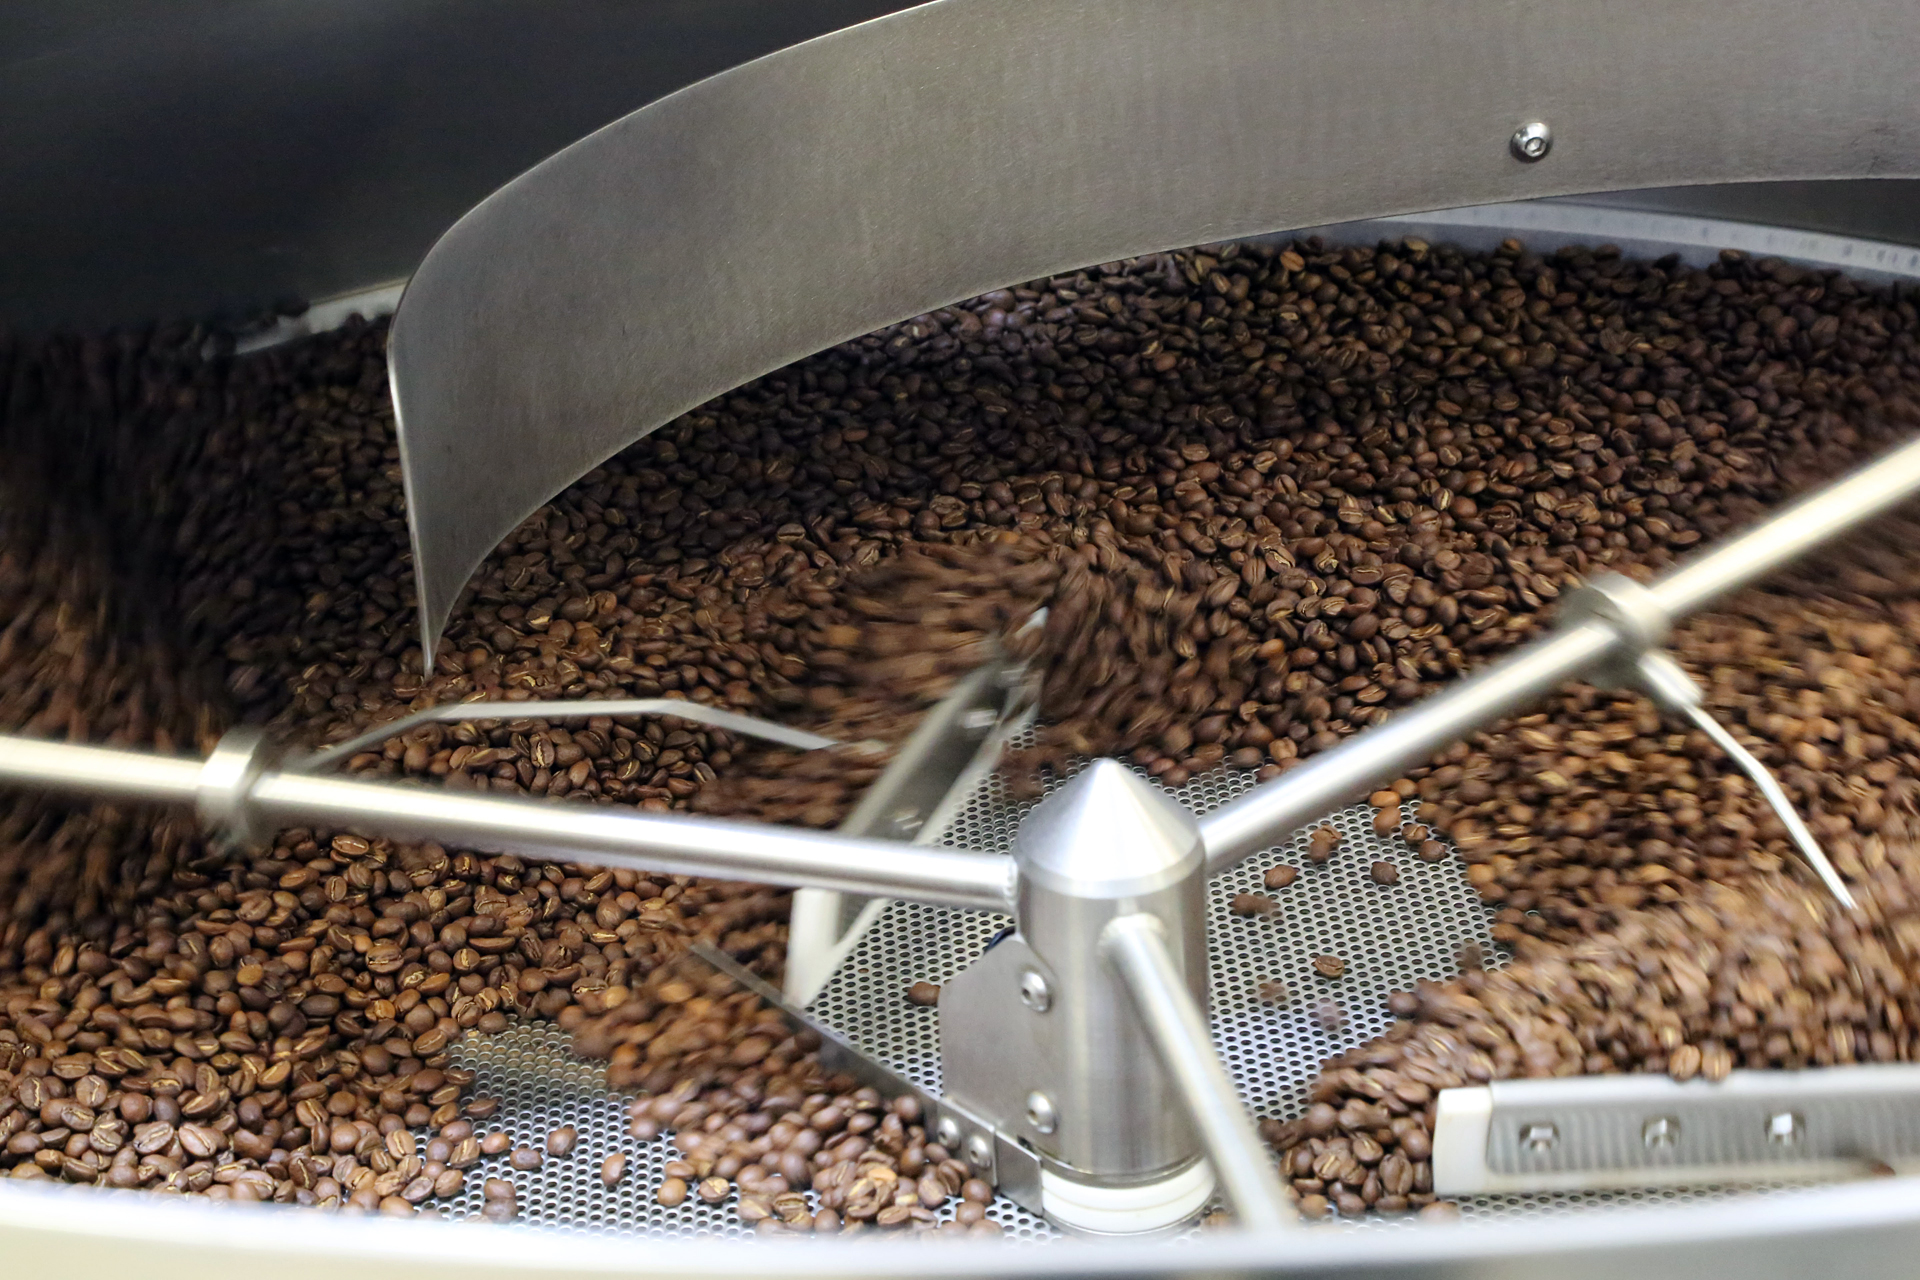 Beans inside the Loring Roaster.